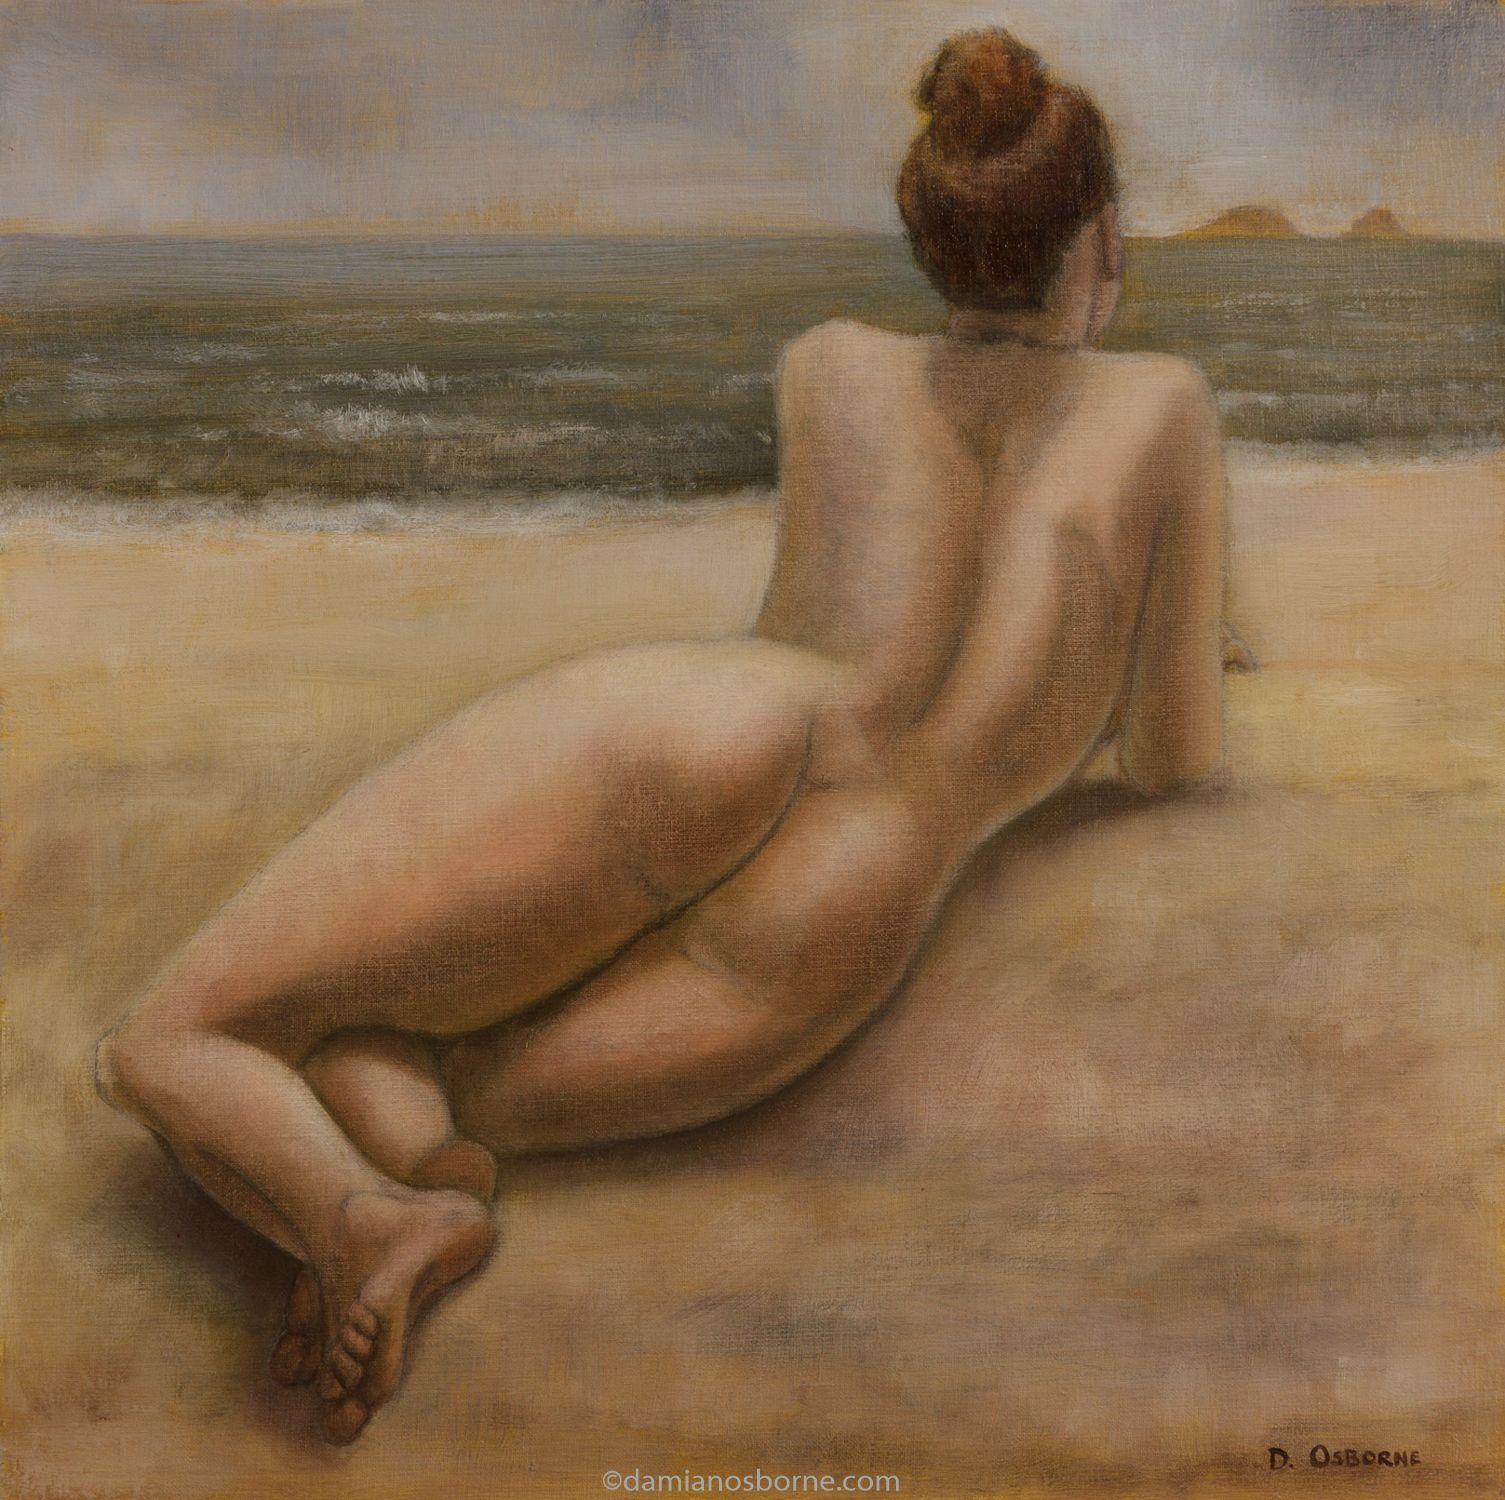 The Sirens. Figurative oil painting by Damian Osborne of a nude woman lying on the beach looking at islands in the distance